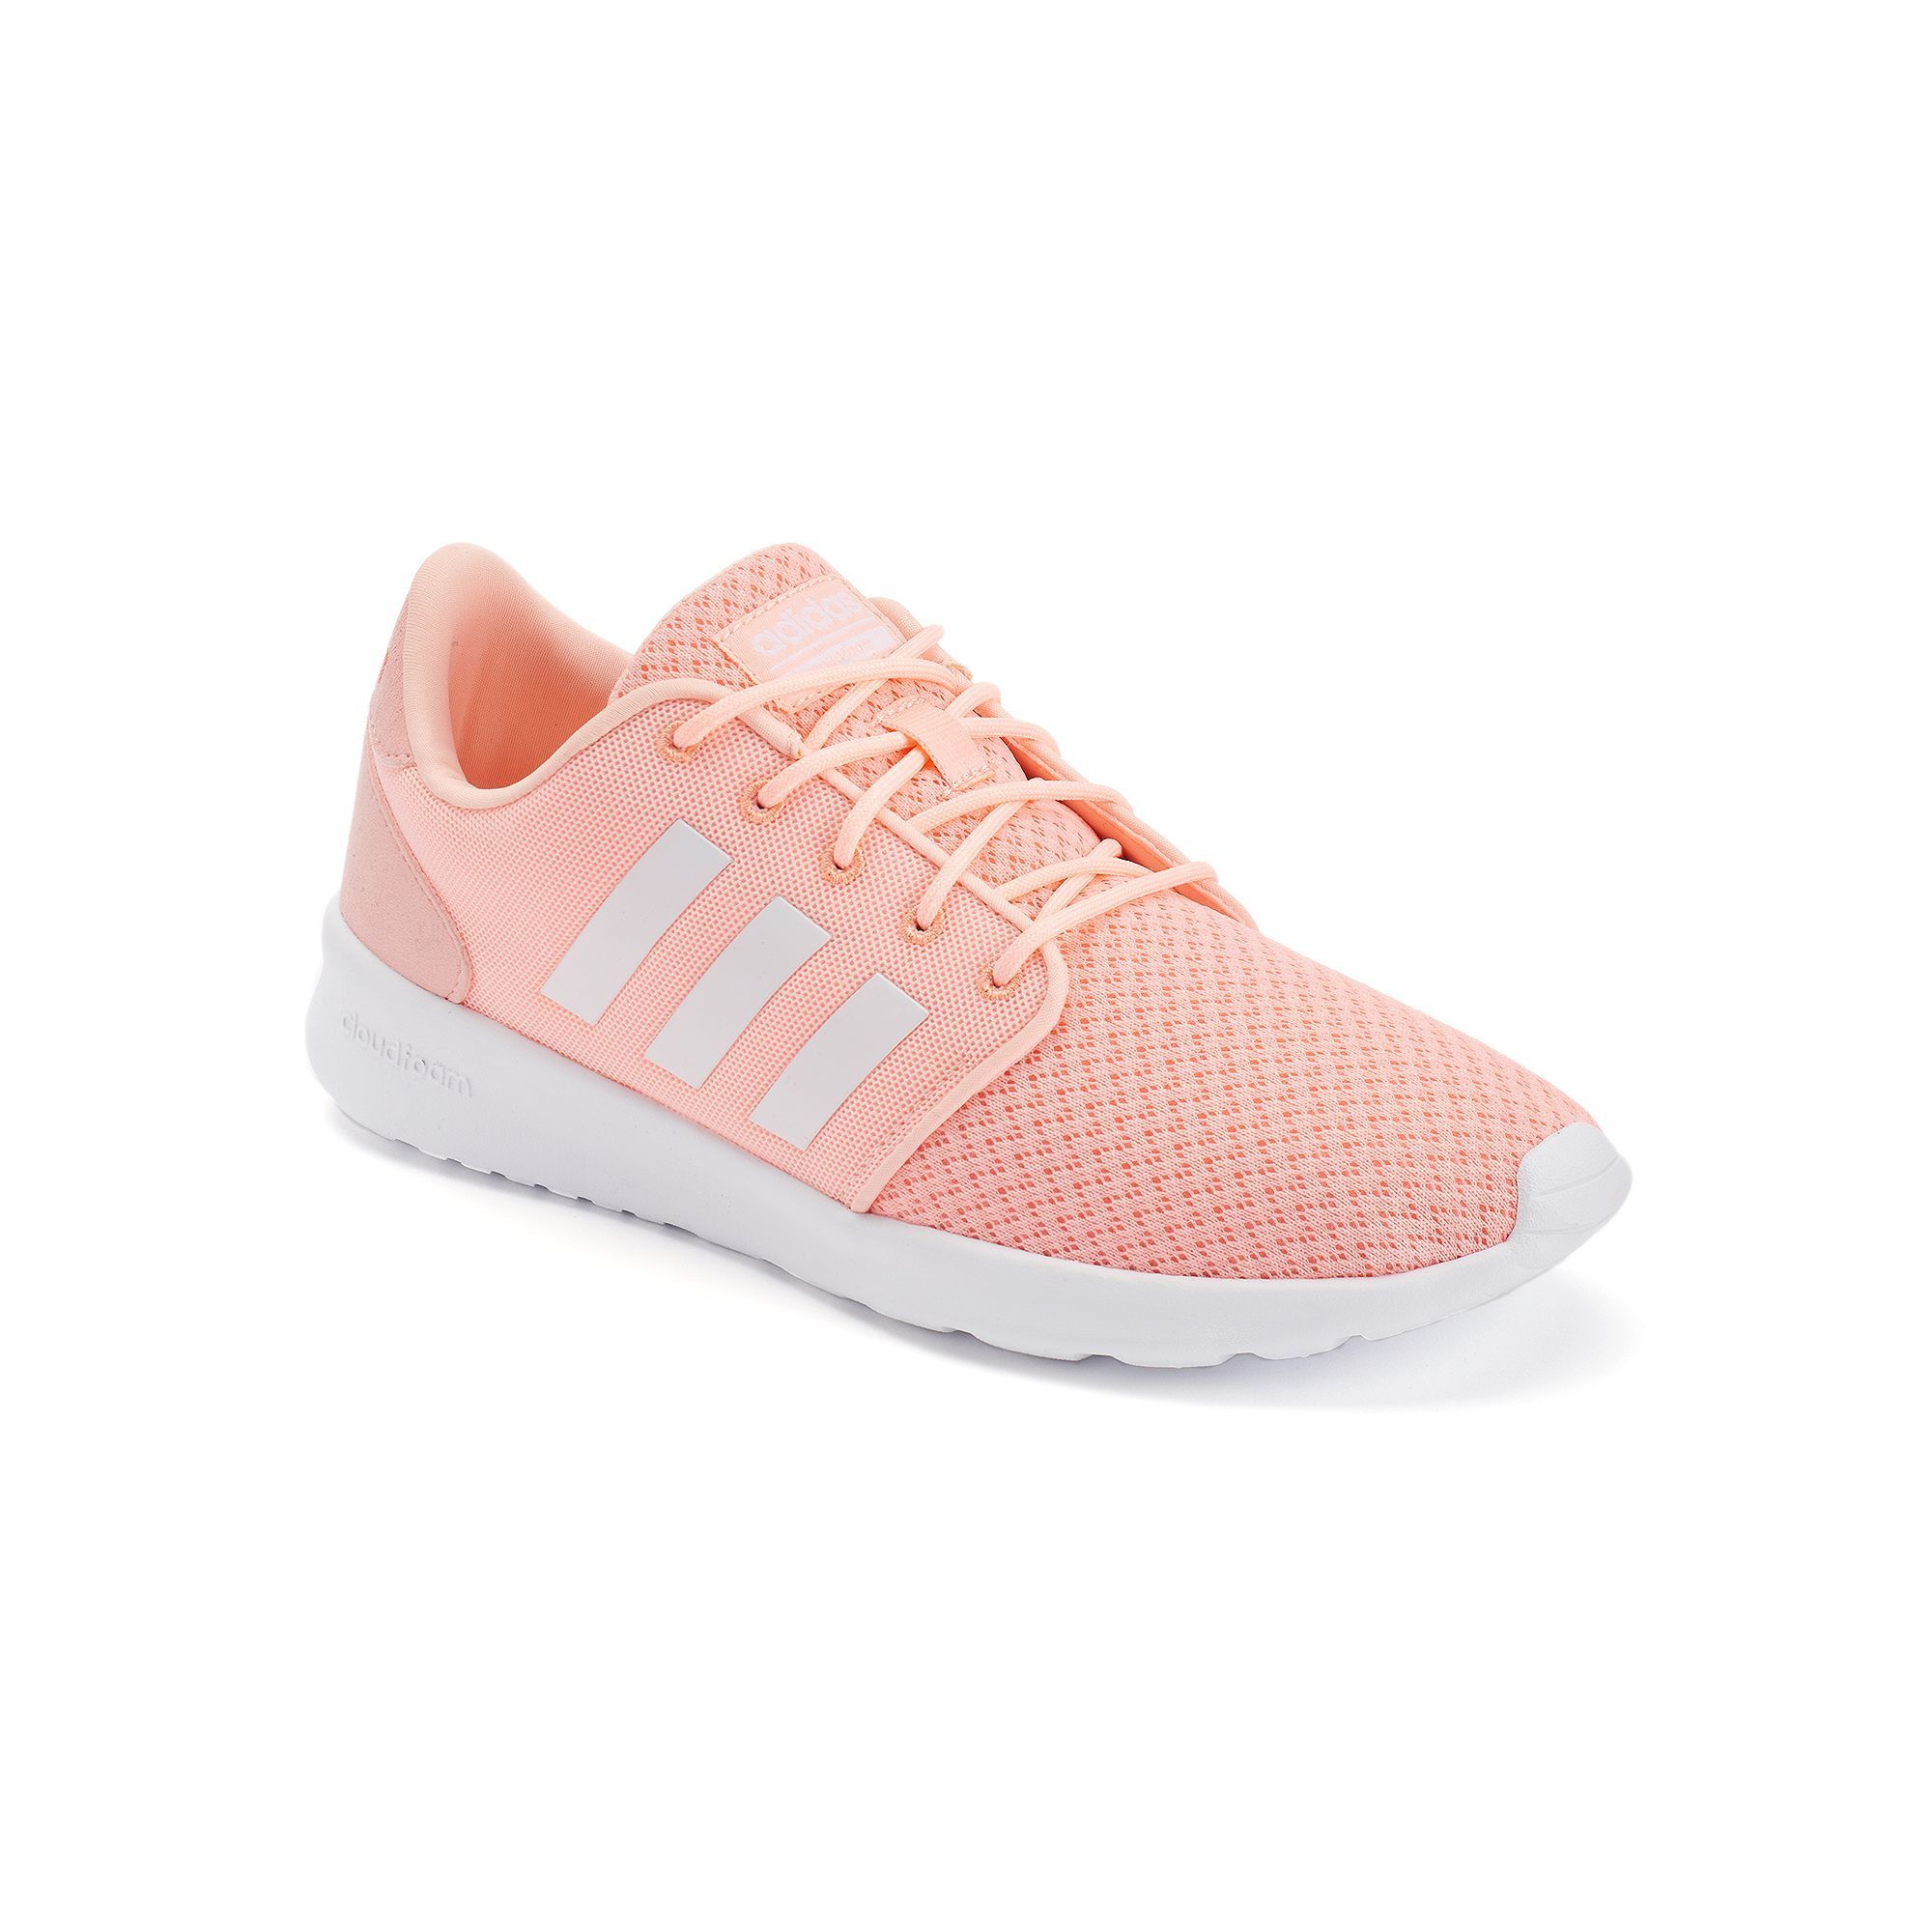 Adidas NEO Cloudfoam QT Racer Women's Shoes, Light Pink